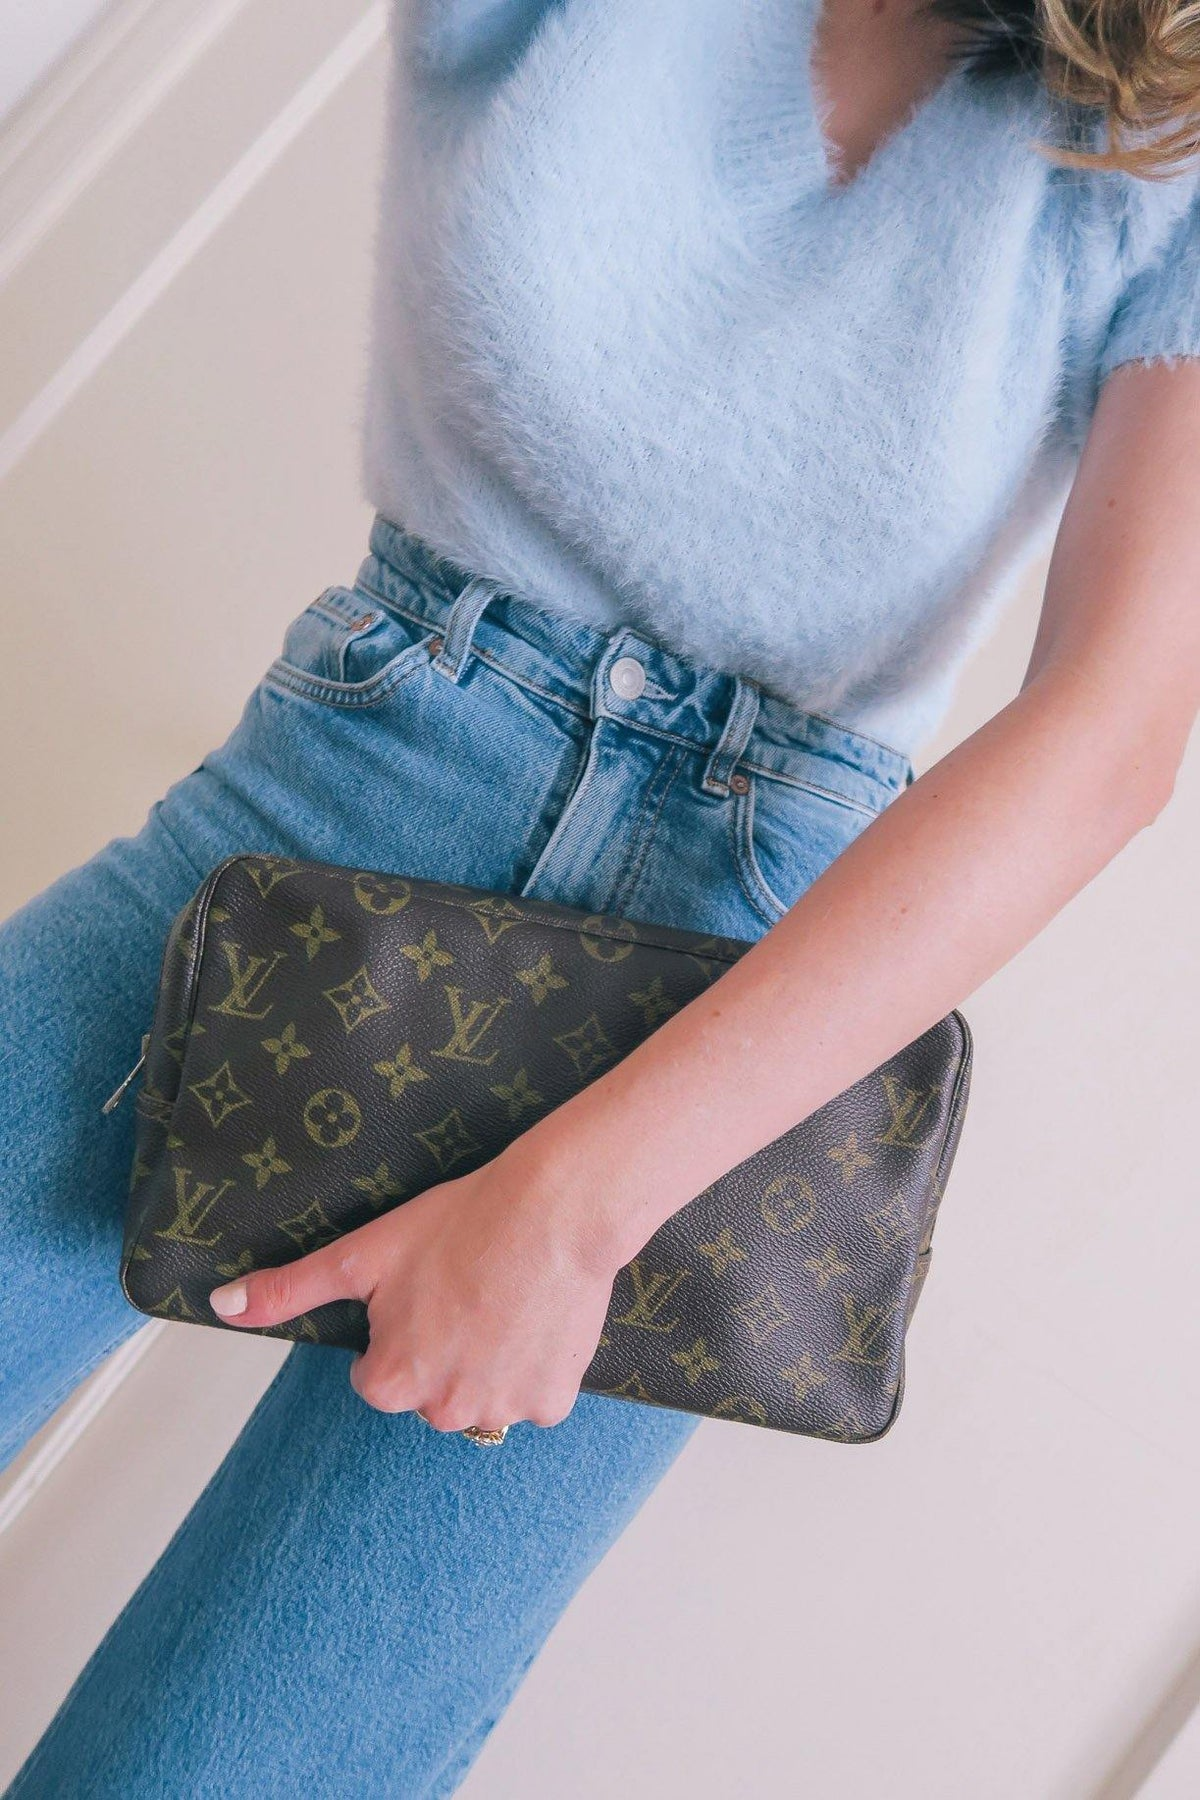 Vintage Louis Vuitton Clutch Bag from Sweet & Spark.